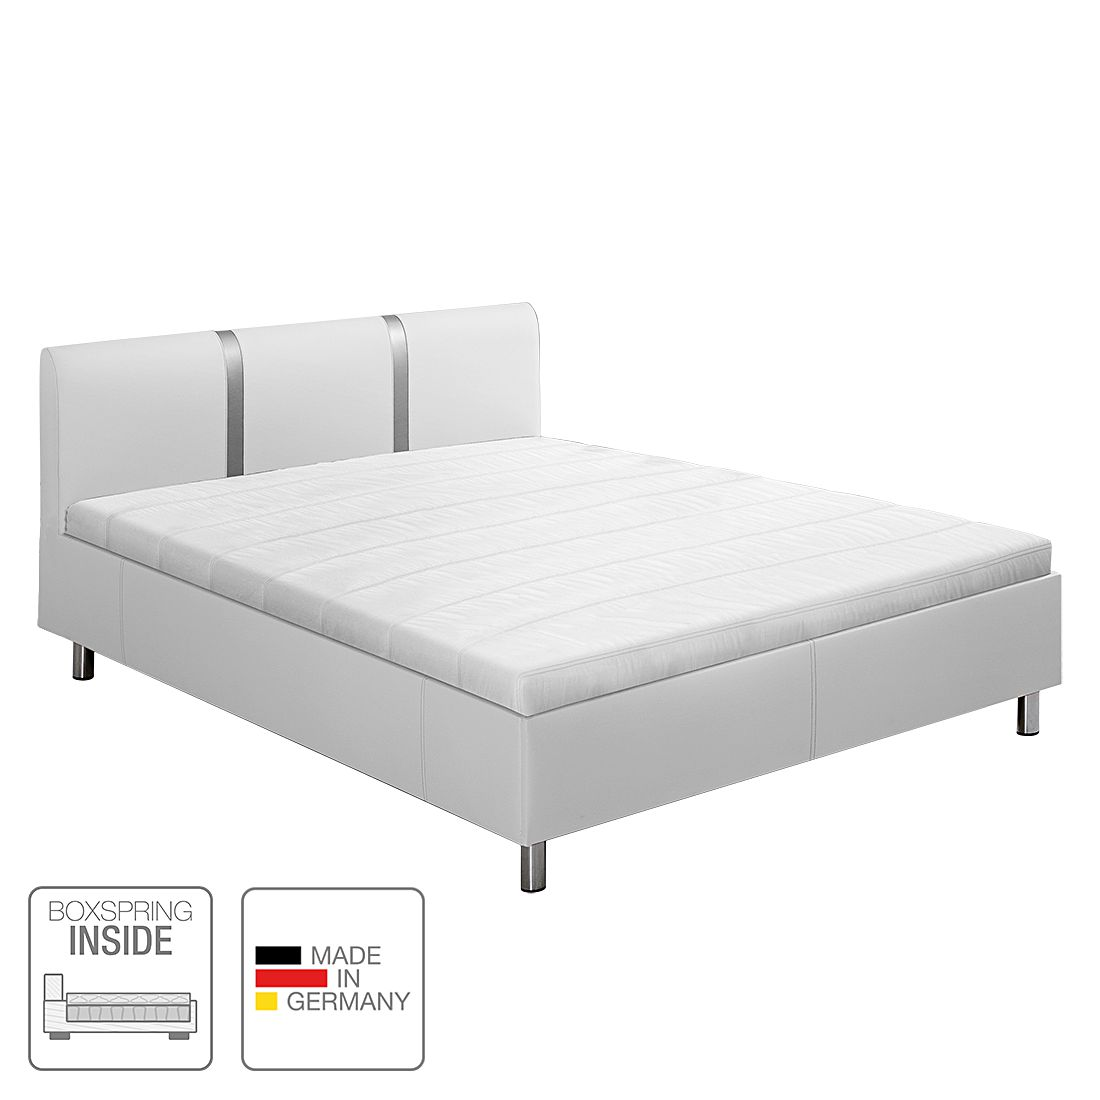 boxspring inside bett caya kunstleder 180 x 200cm h2 bis 80 kg. Black Bedroom Furniture Sets. Home Design Ideas